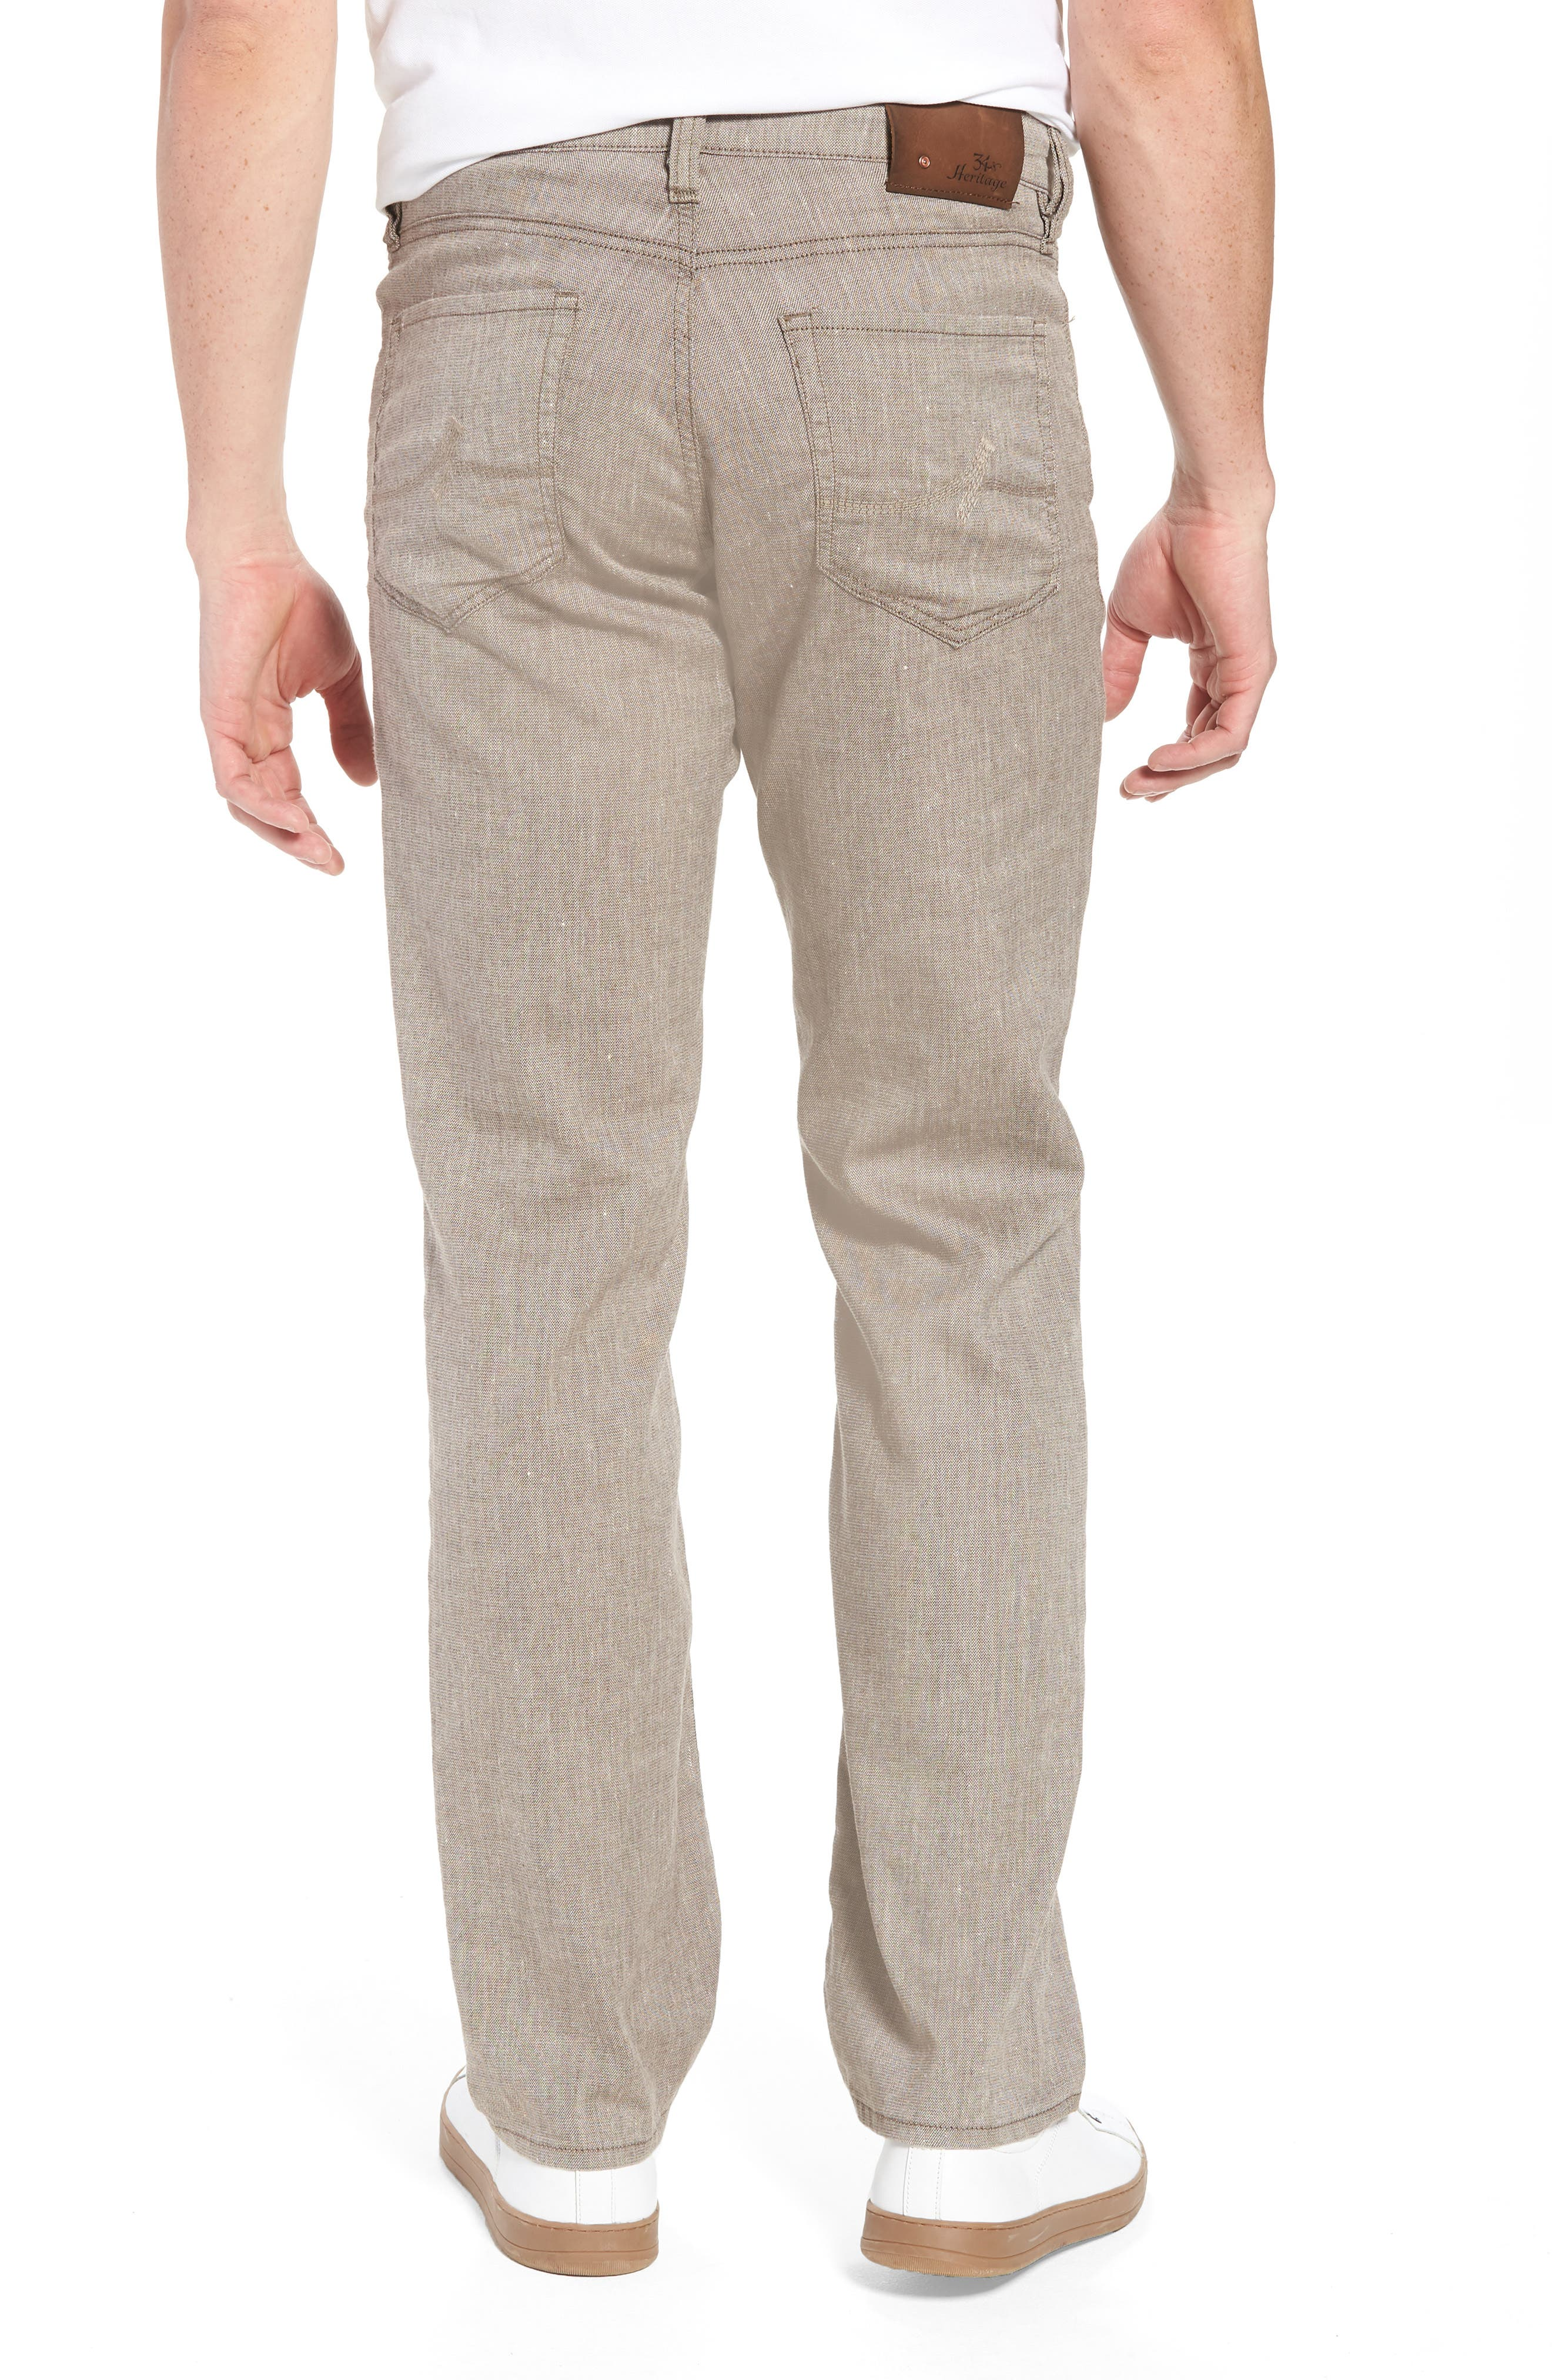 Charisma Relaxed Fit Pants,                             Alternate thumbnail 2, color,                             200